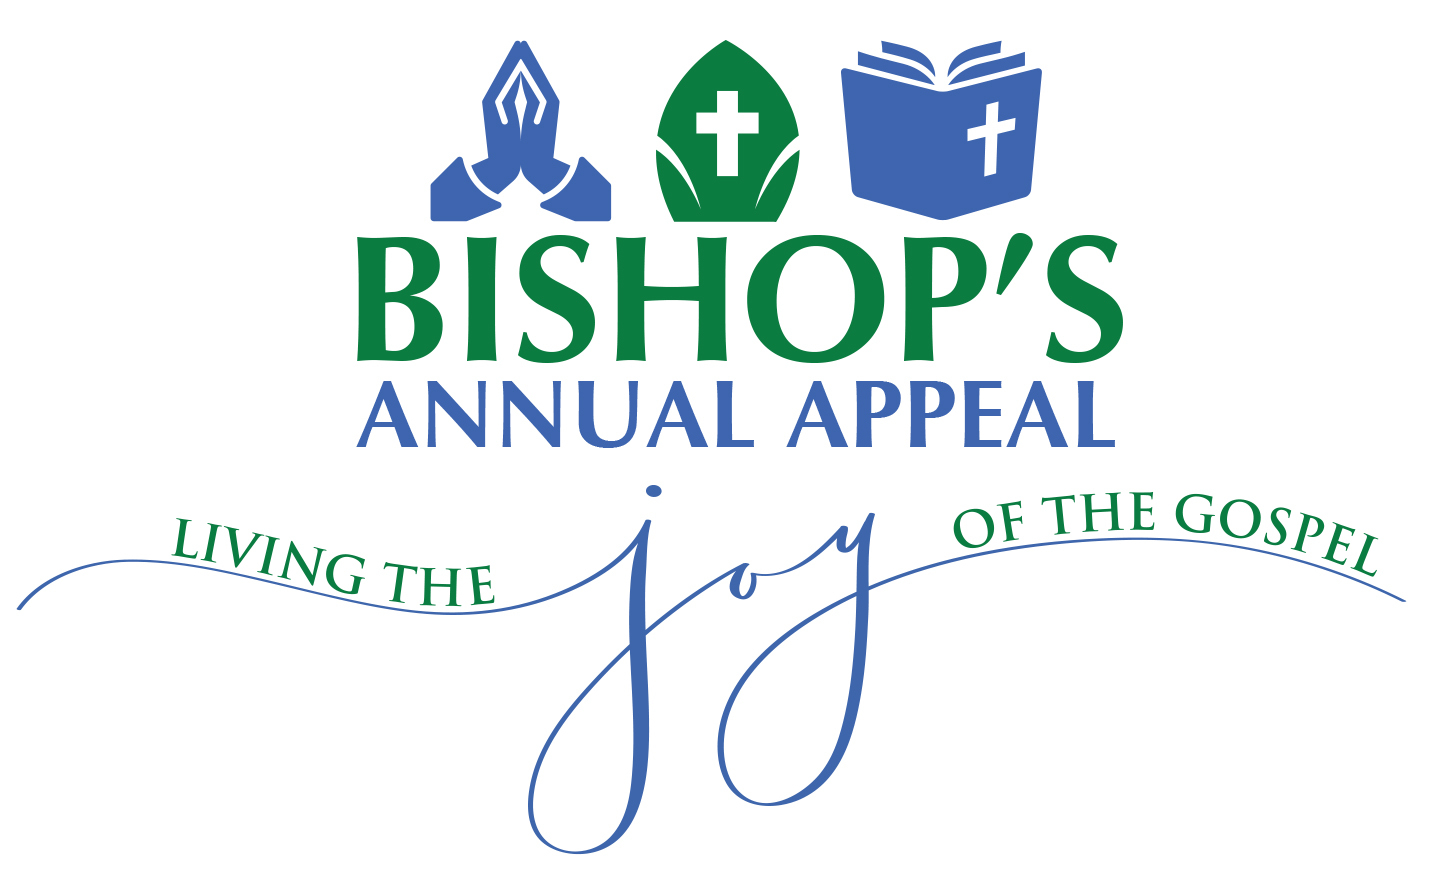 Thank you for your support of the Bishop's Annual Appeal!